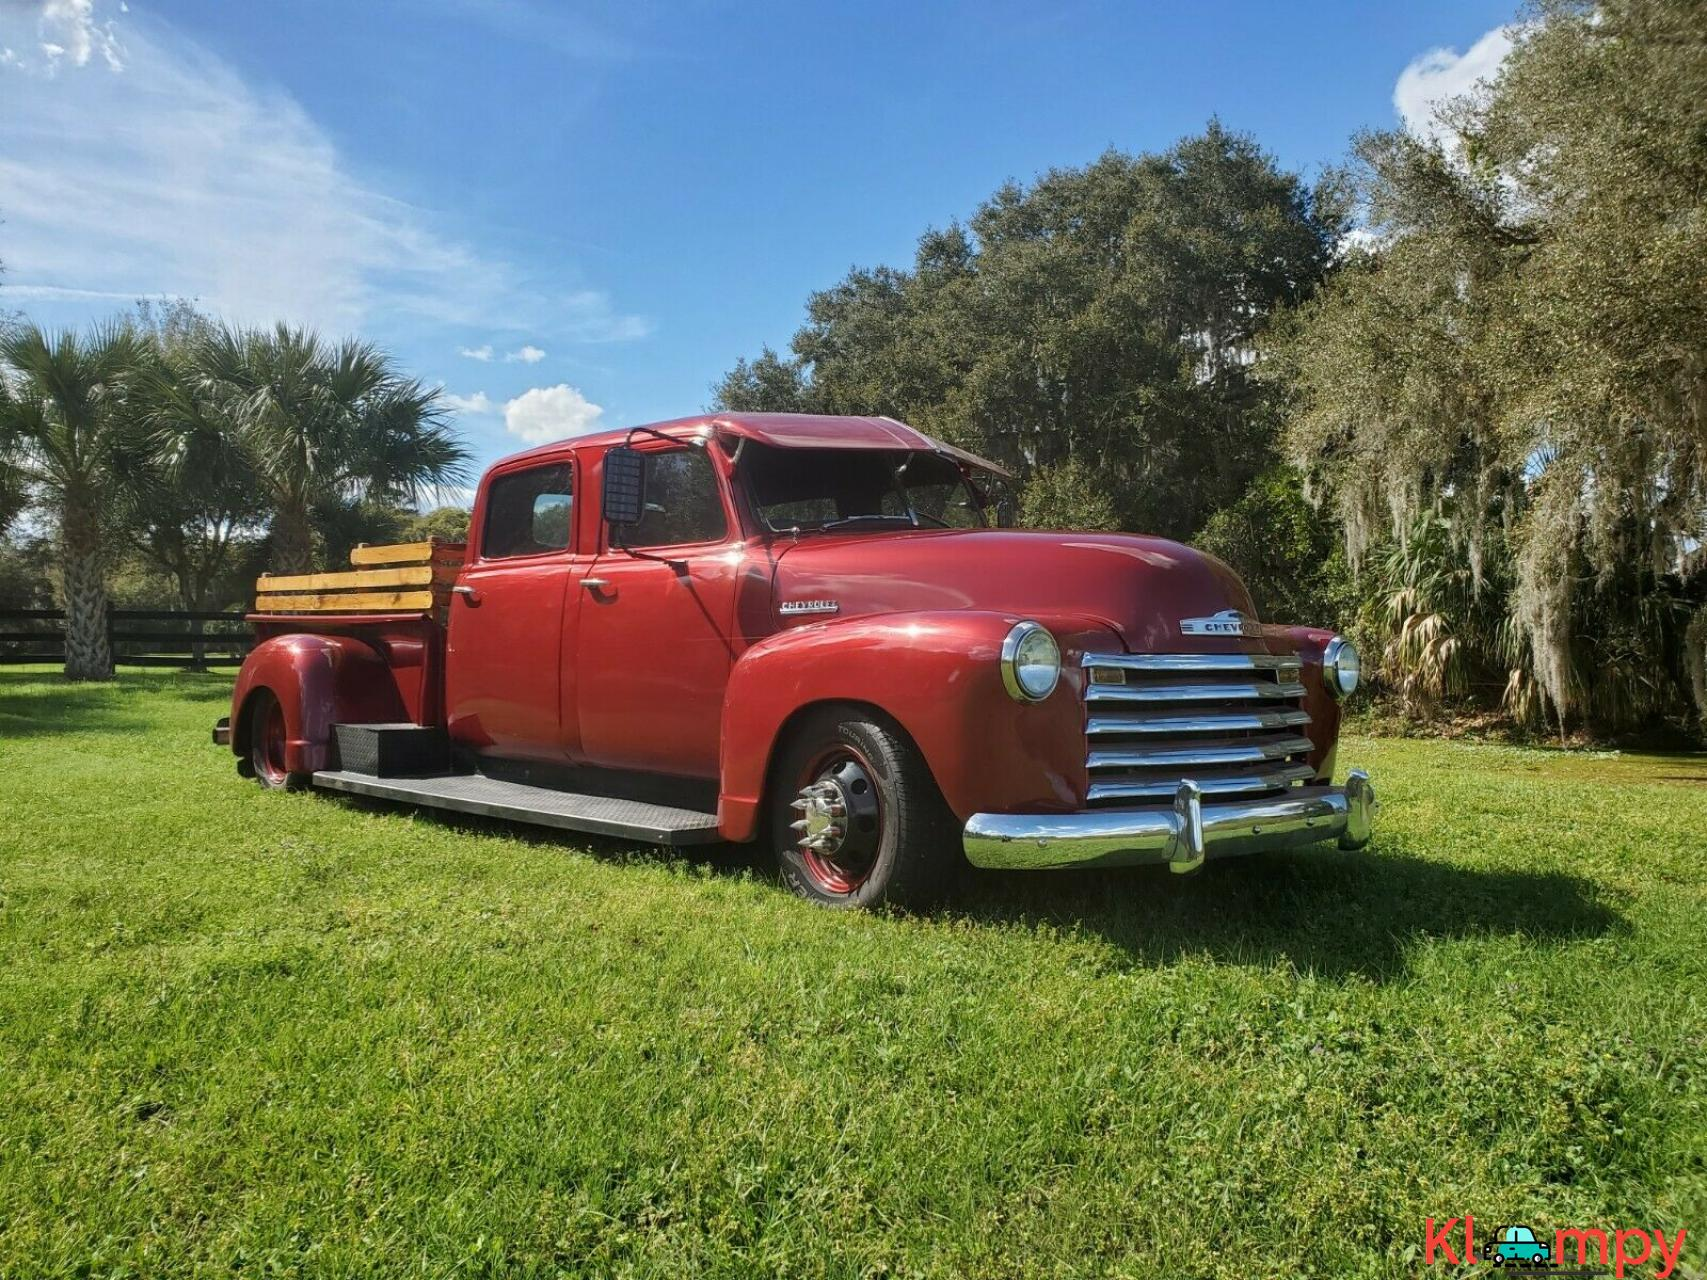 1949 Chevrolet Other Crewcab Diesel Dually - 11/14